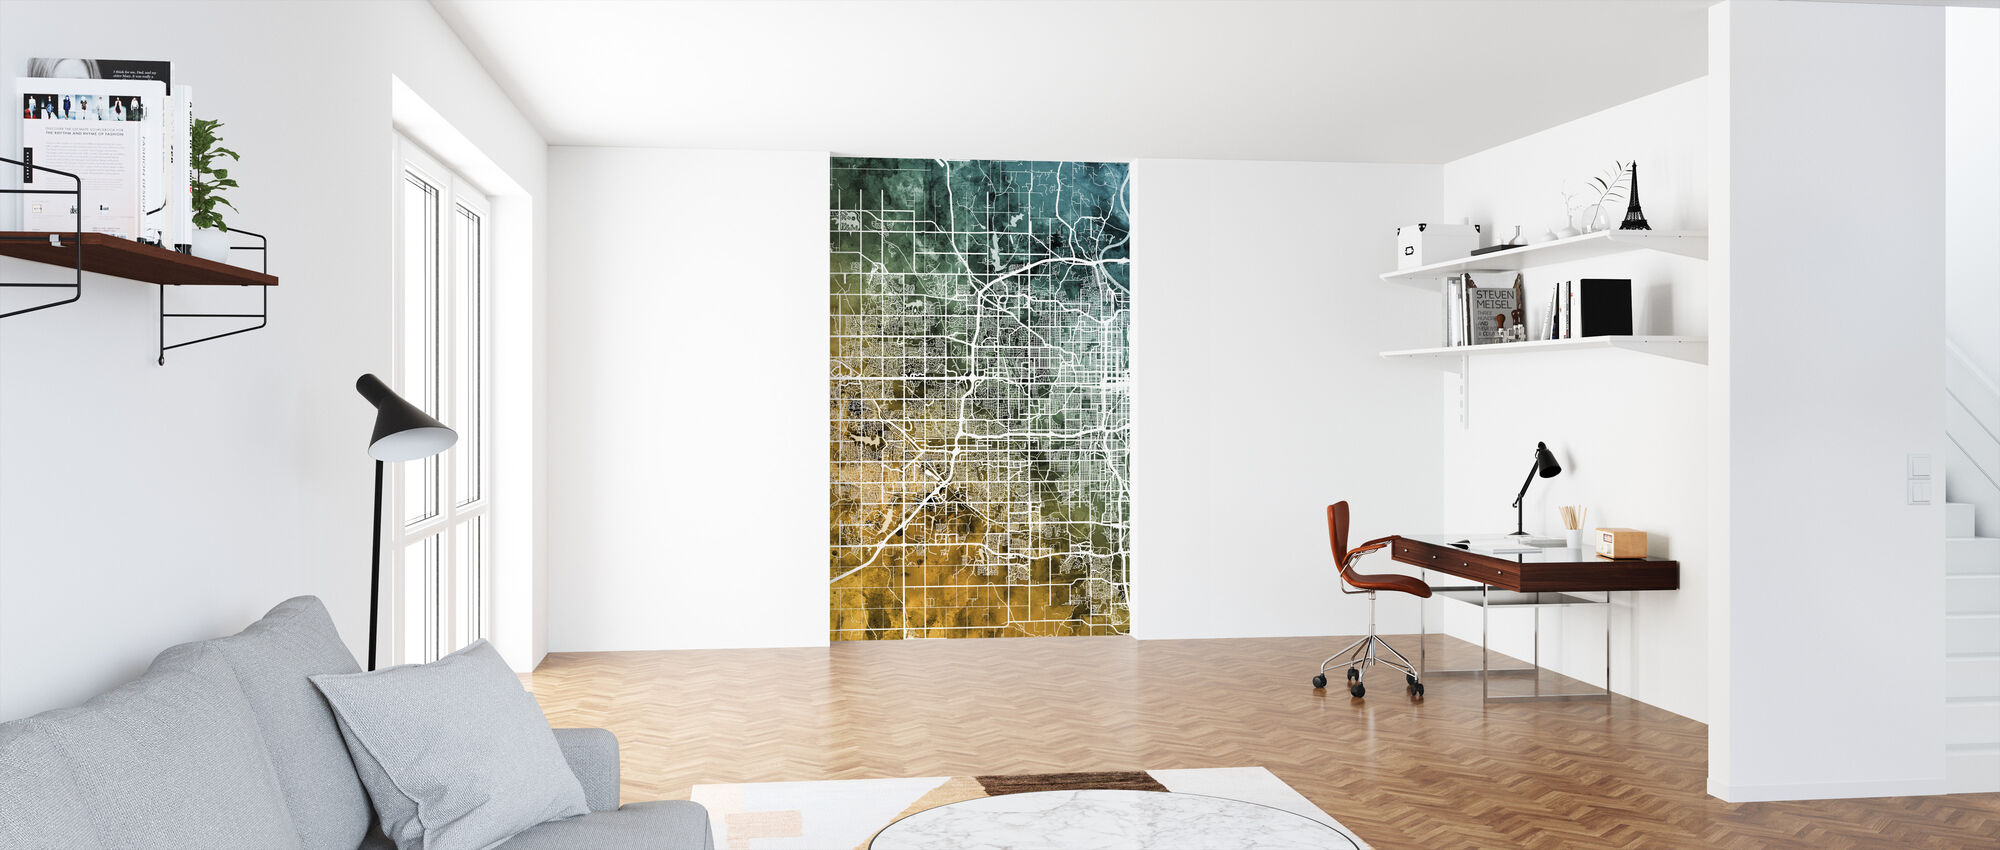 Omaha Nebraska City Map - Wallpaper - Office